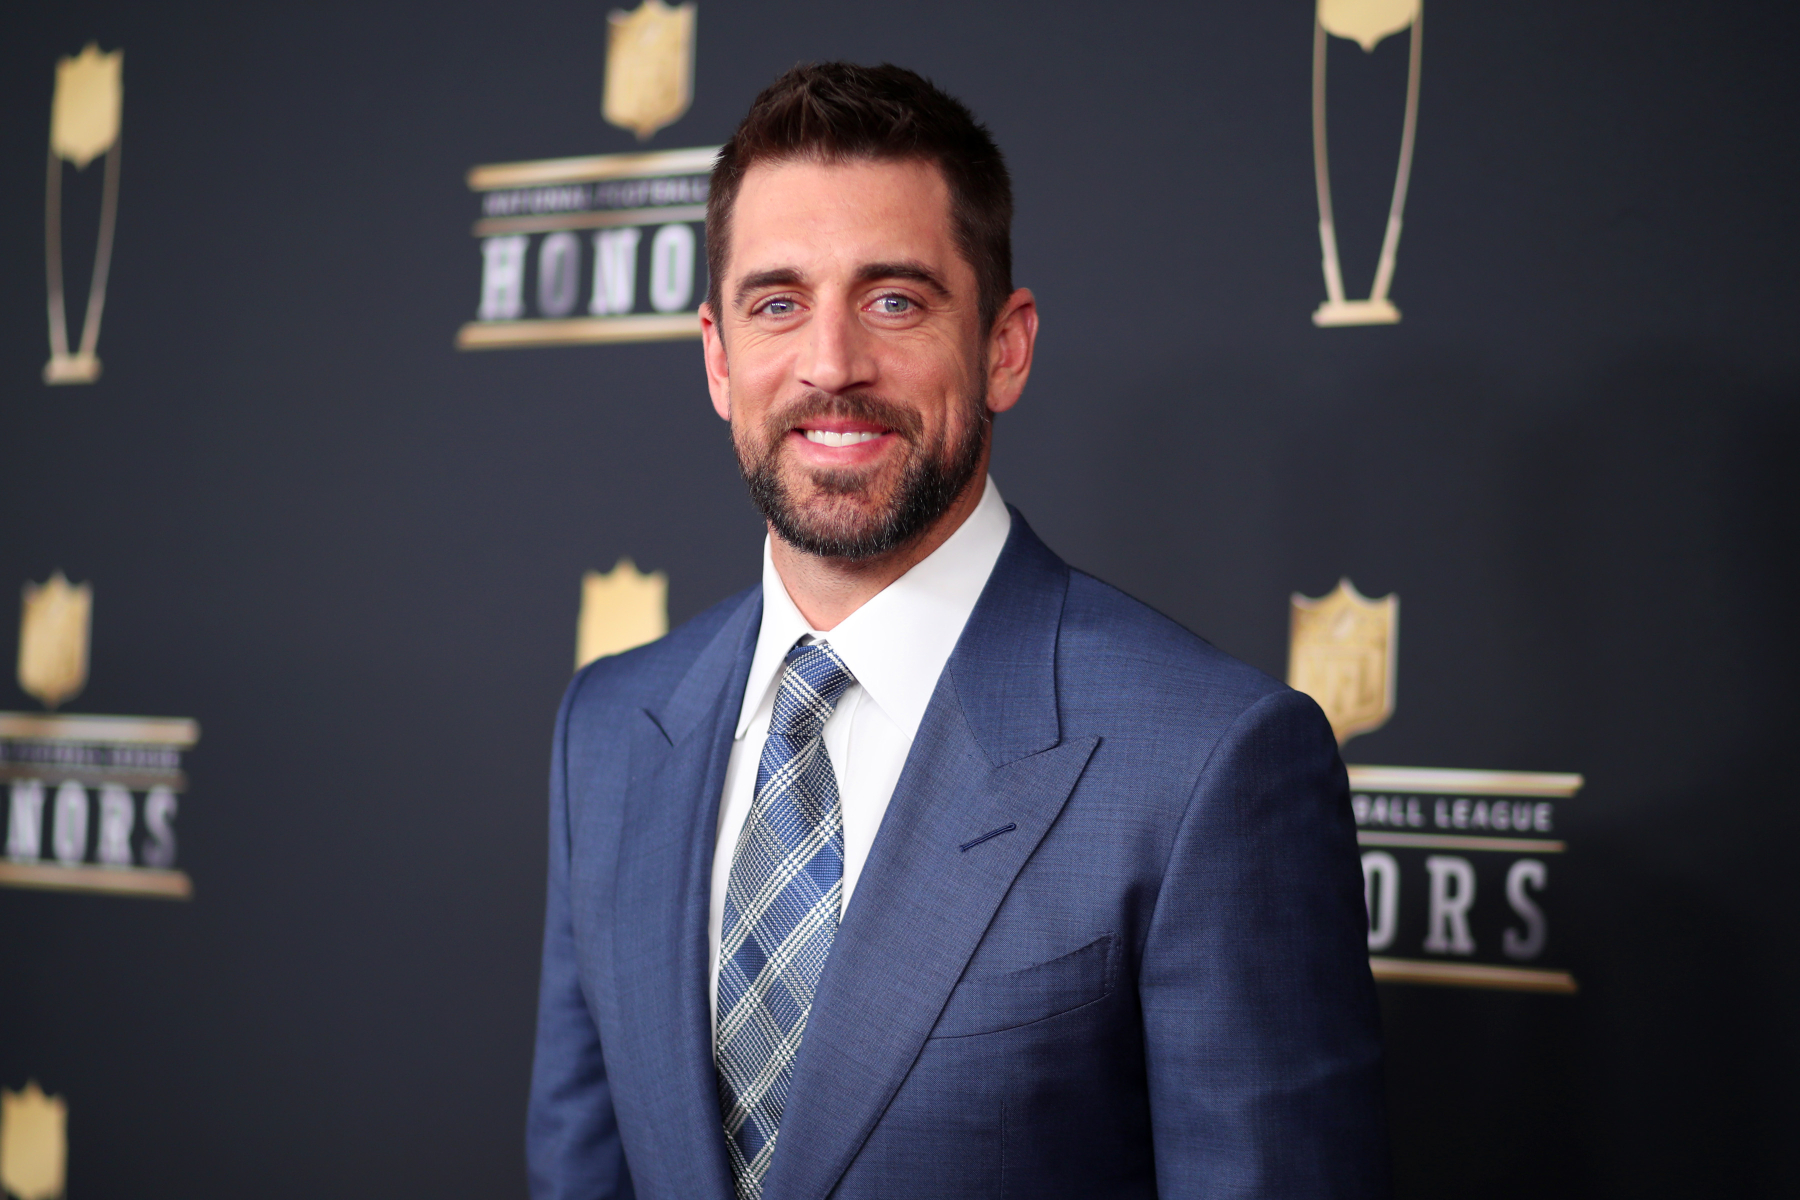 Green Bay Packers quarterback Aaron Rodgers is one of the most popular players in the NFL. This has led to him doing a lot of commercials.